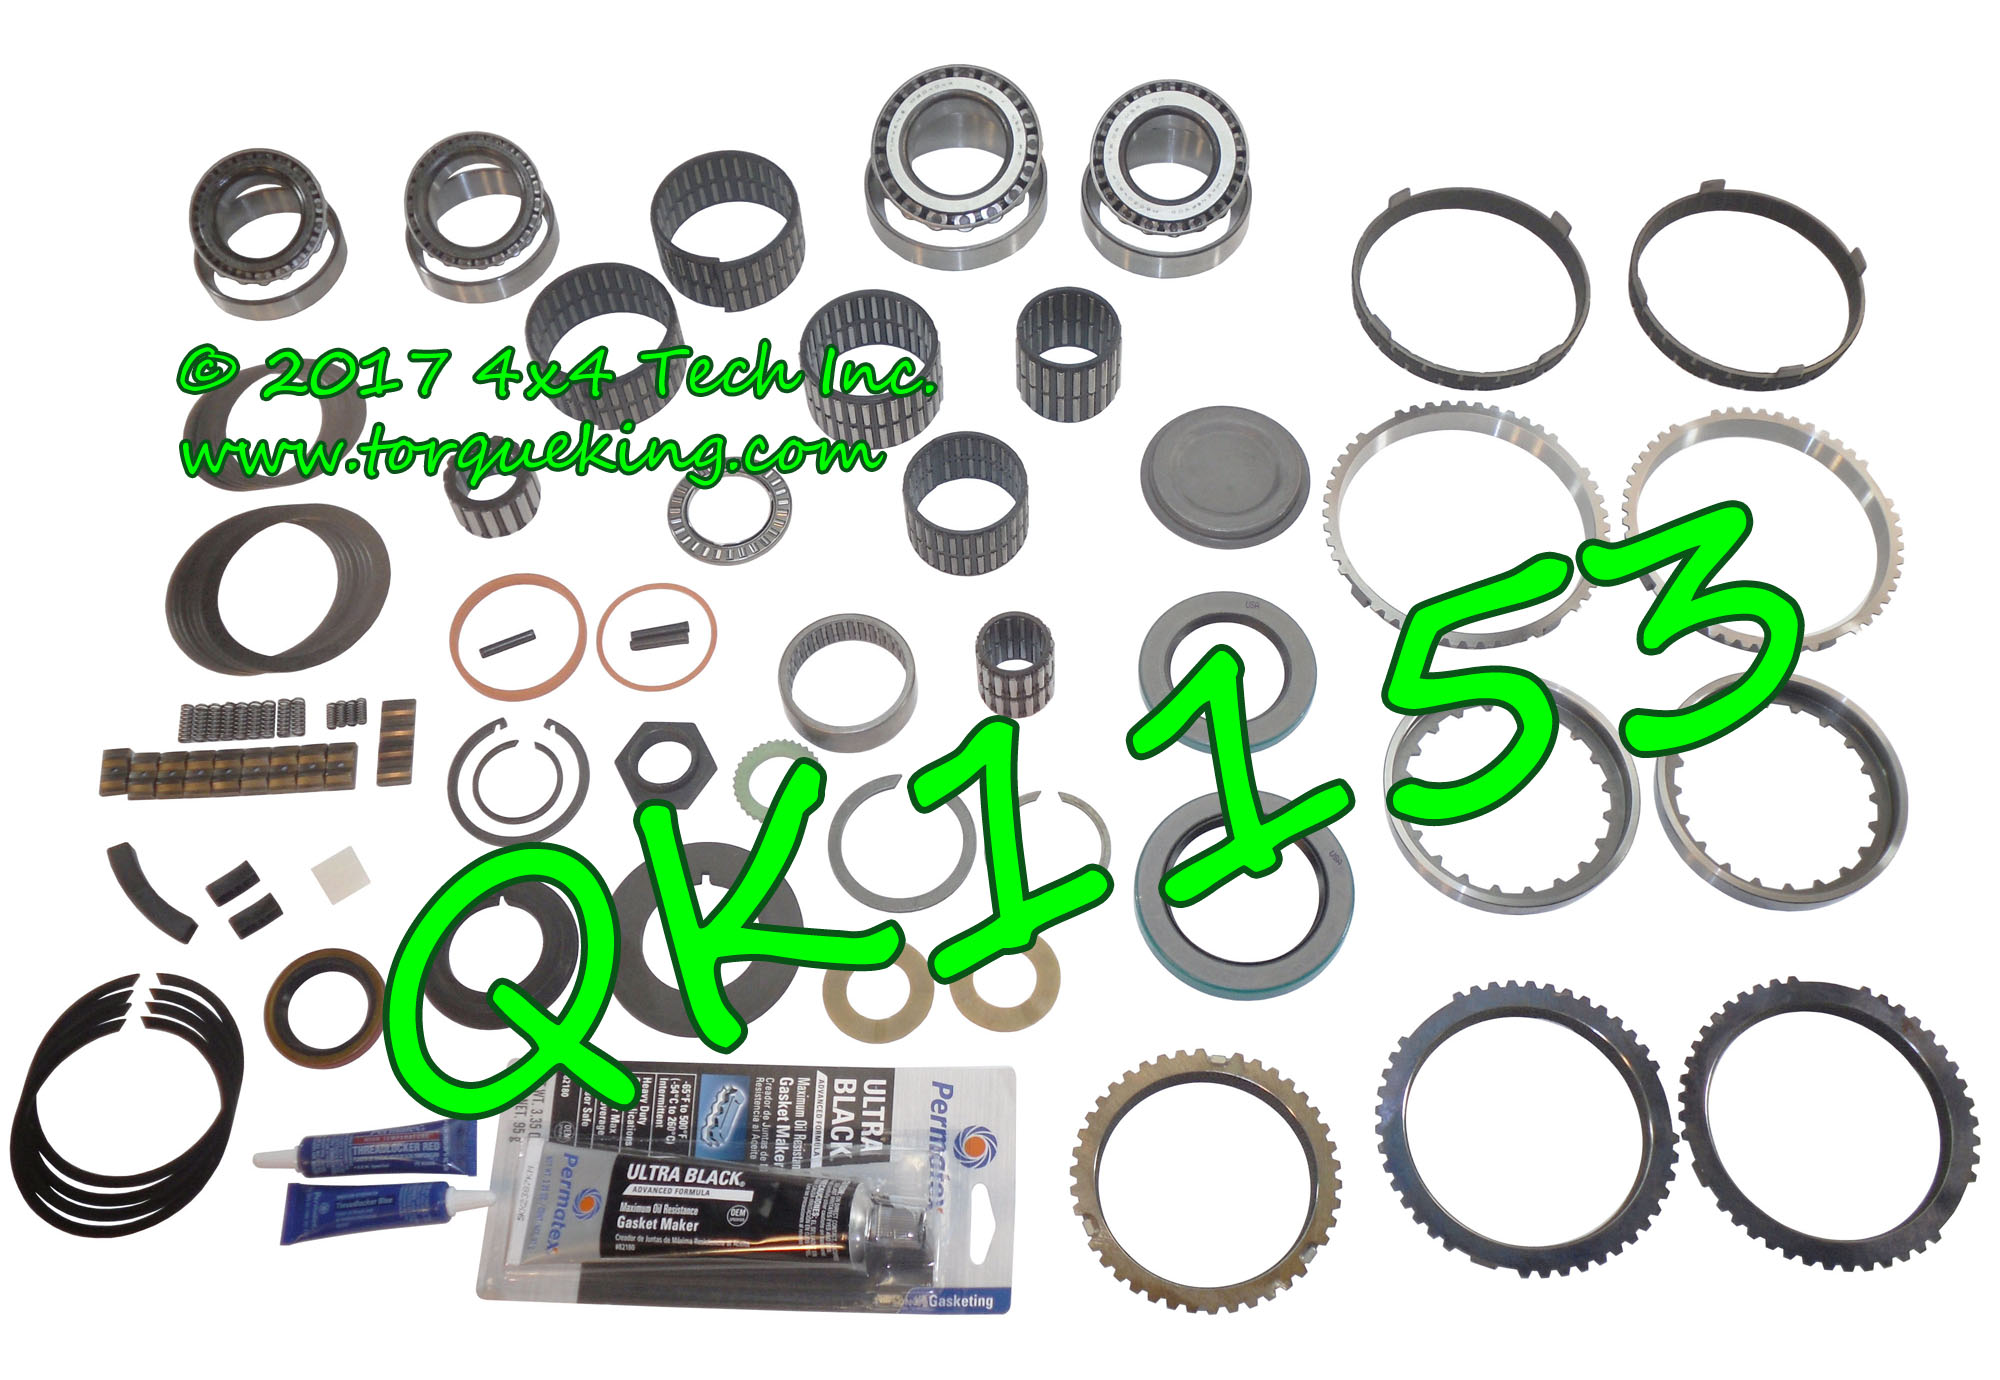 hight resolution of qk1153 premium rebuild kit with 9 synchro rings for 1997 1998 gm 4x2 new venture 5 speed manual transmission in c trucks